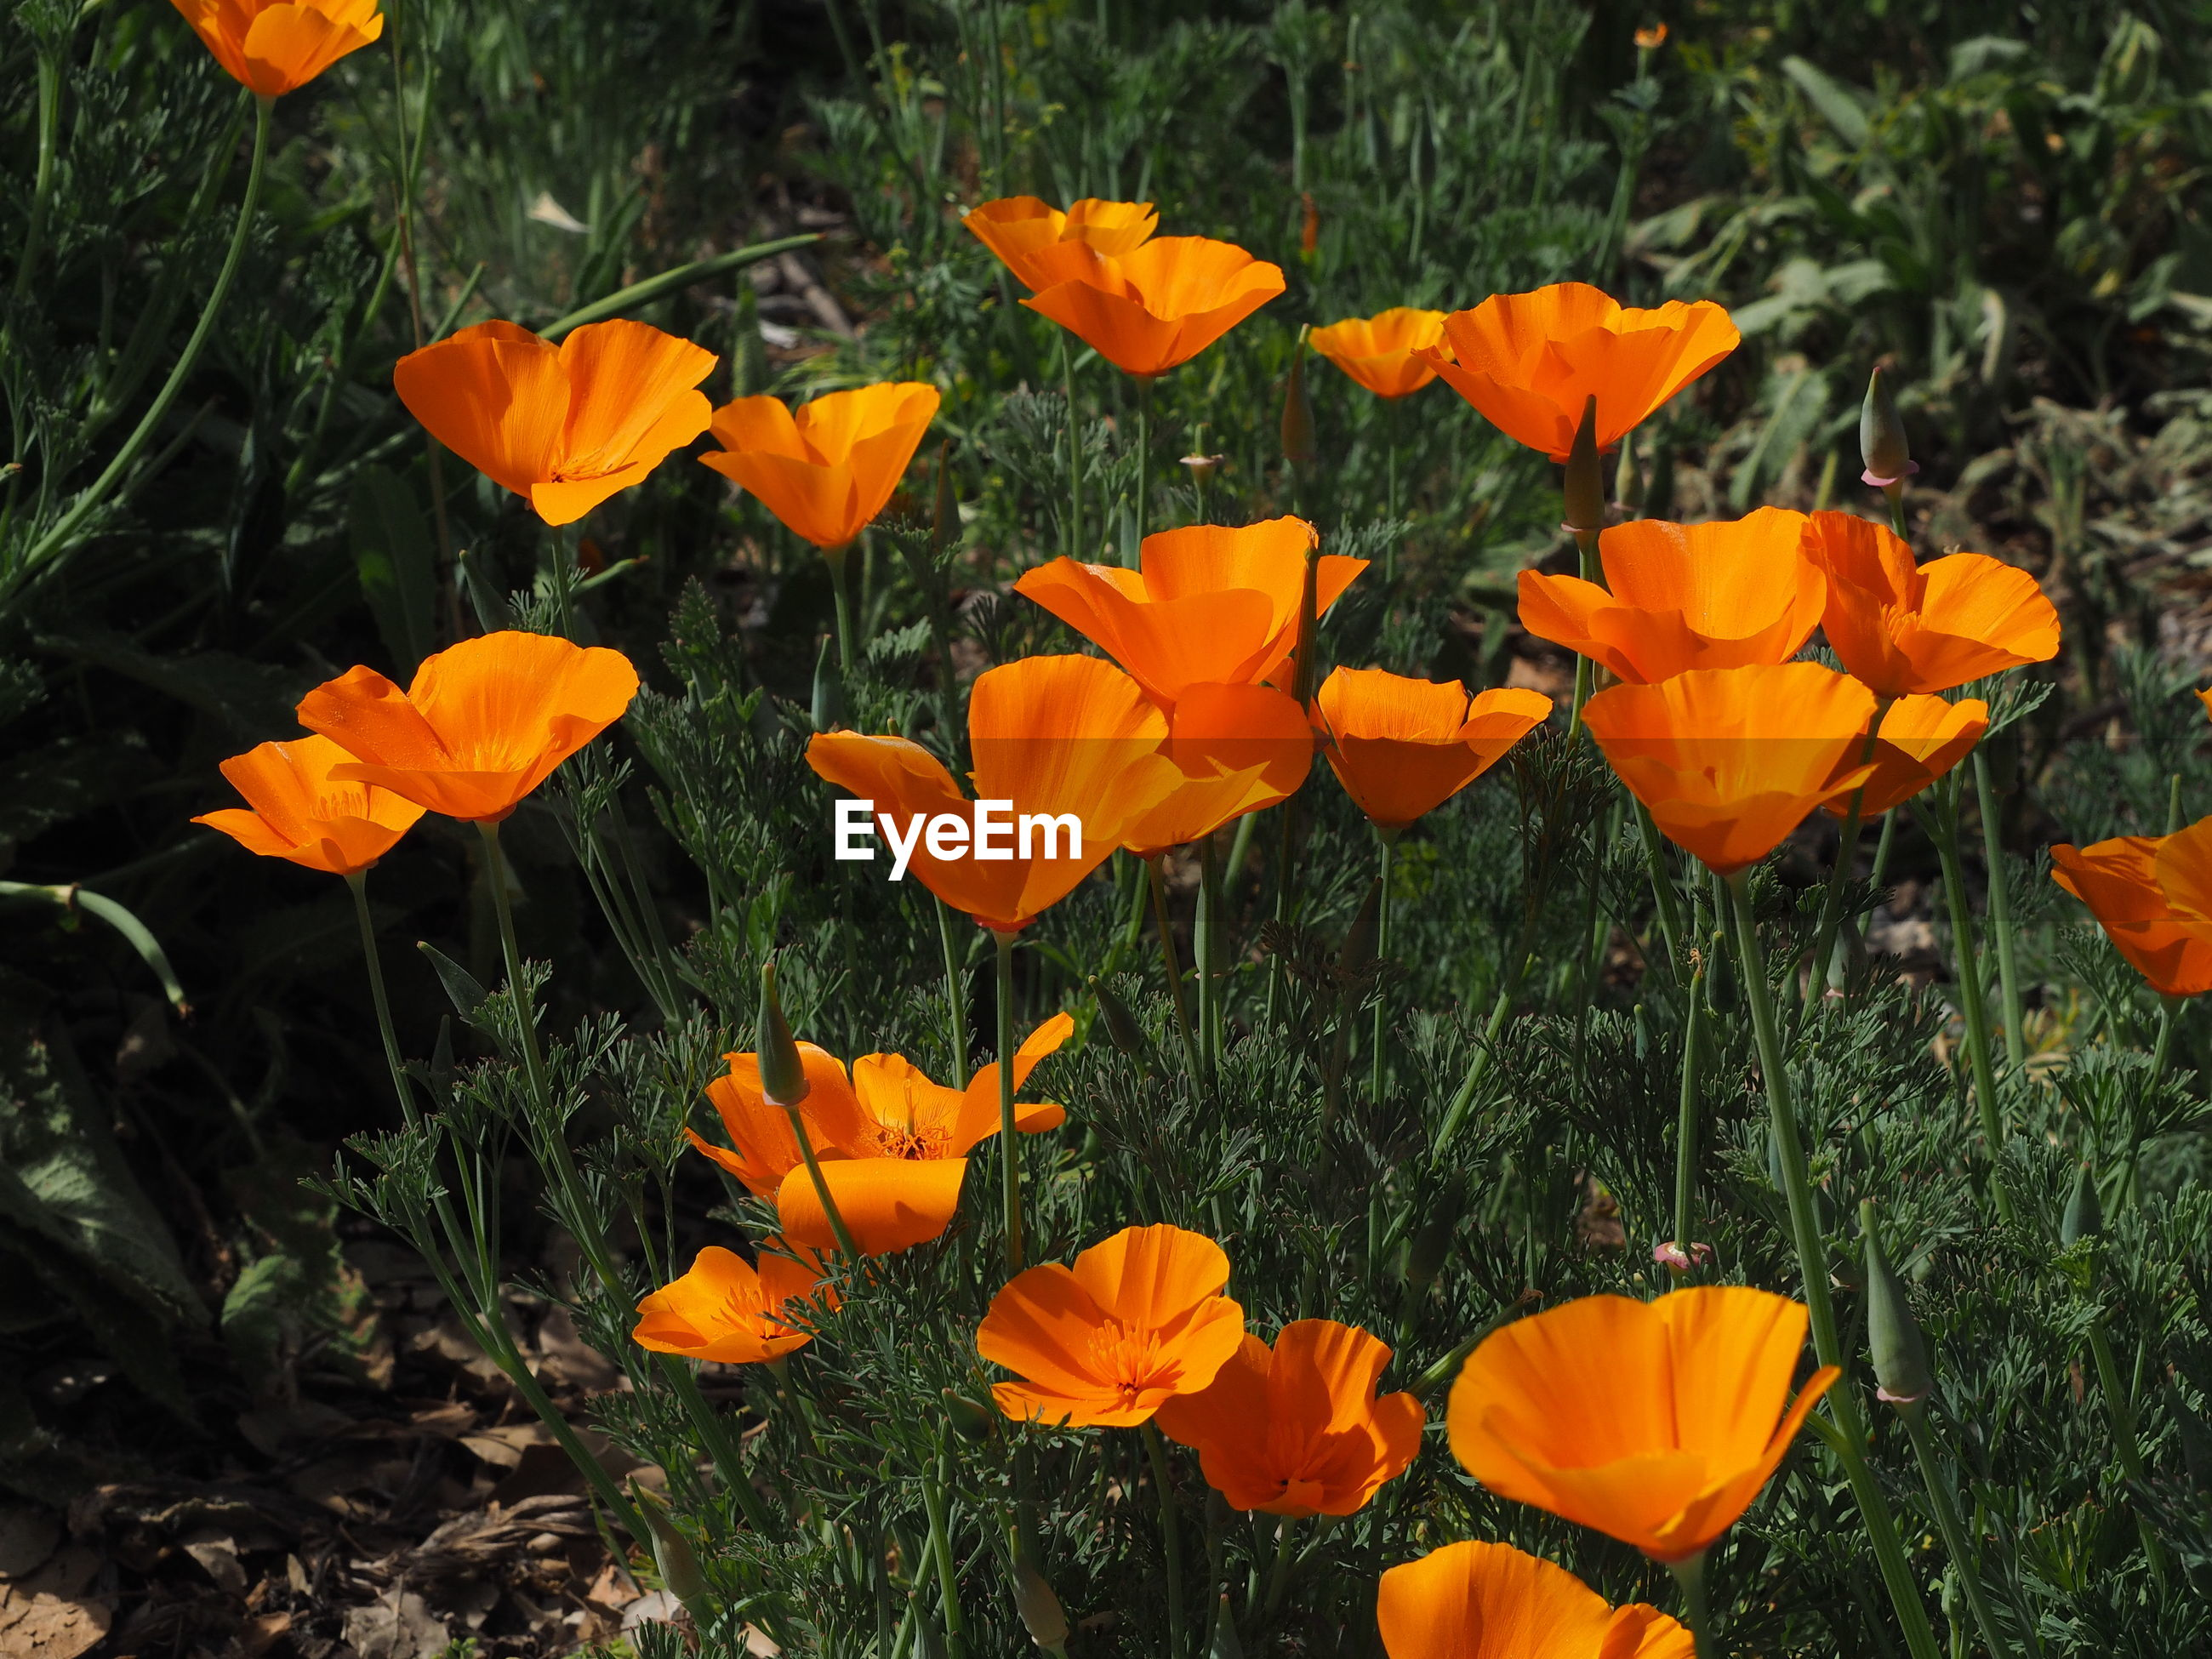 CLOSE-UP OF ORANGE POPPY FLOWERS GROWING IN FIELD